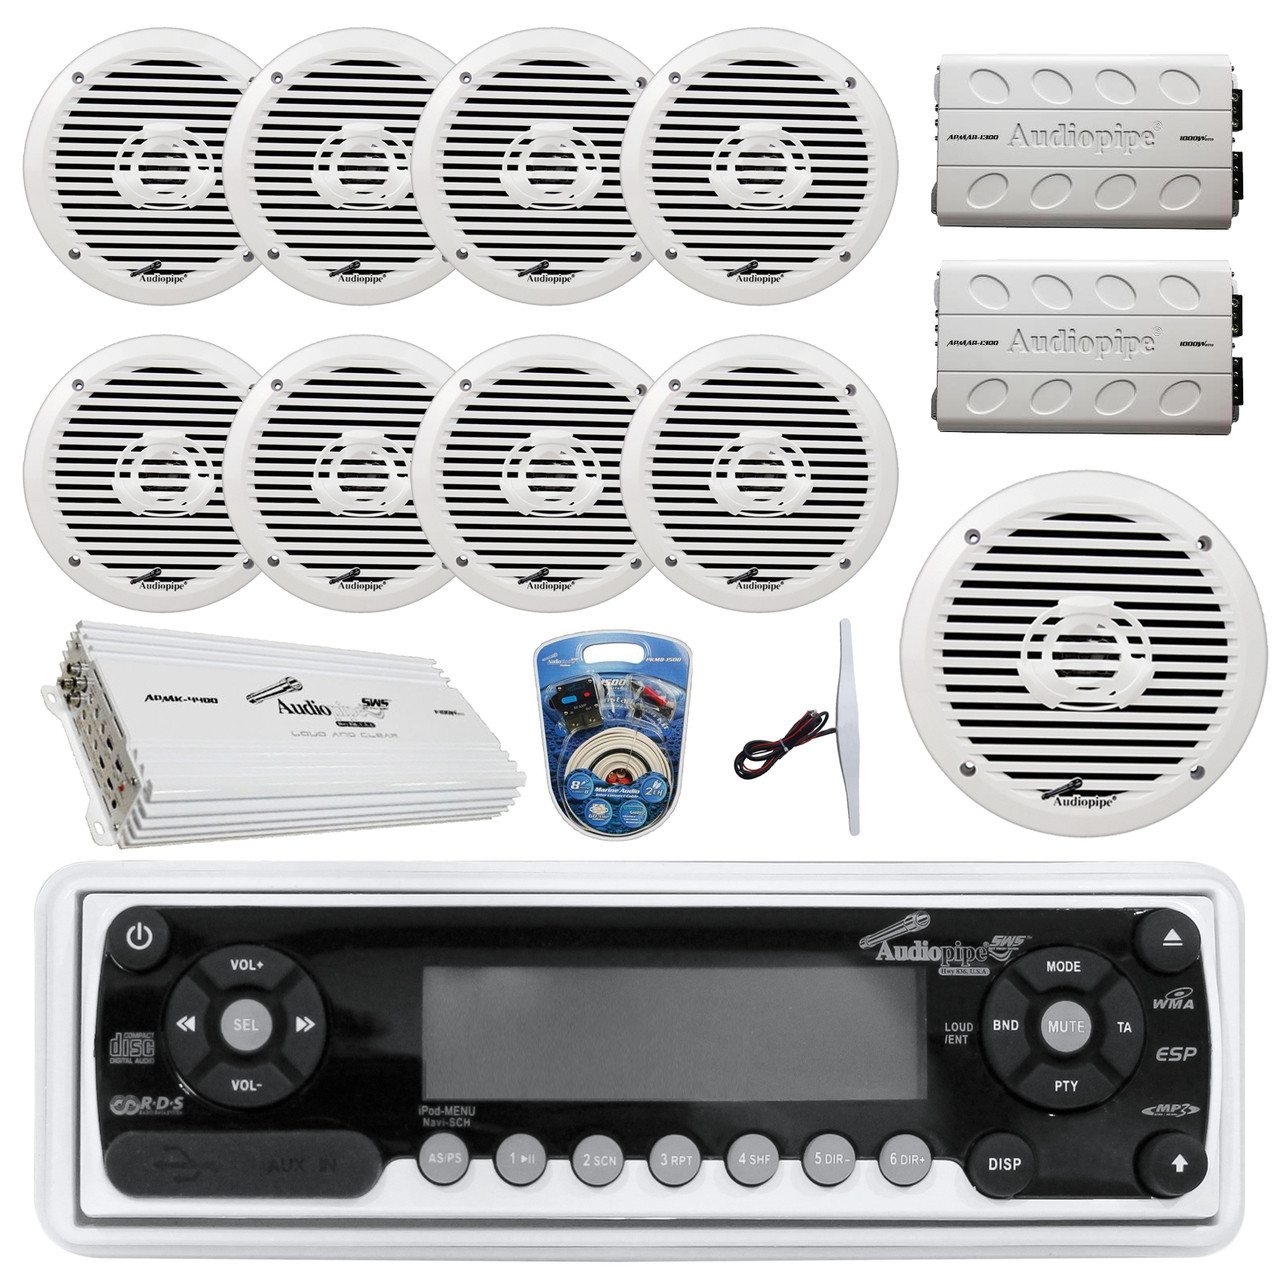 hight resolution of 36 42 boat audiopipe marine am fm cd receiver 8x 8 white boat speakers 2x 4 channel amp 1400w 10 subwoofer 2x mini 1000w amp 8 gauge marine